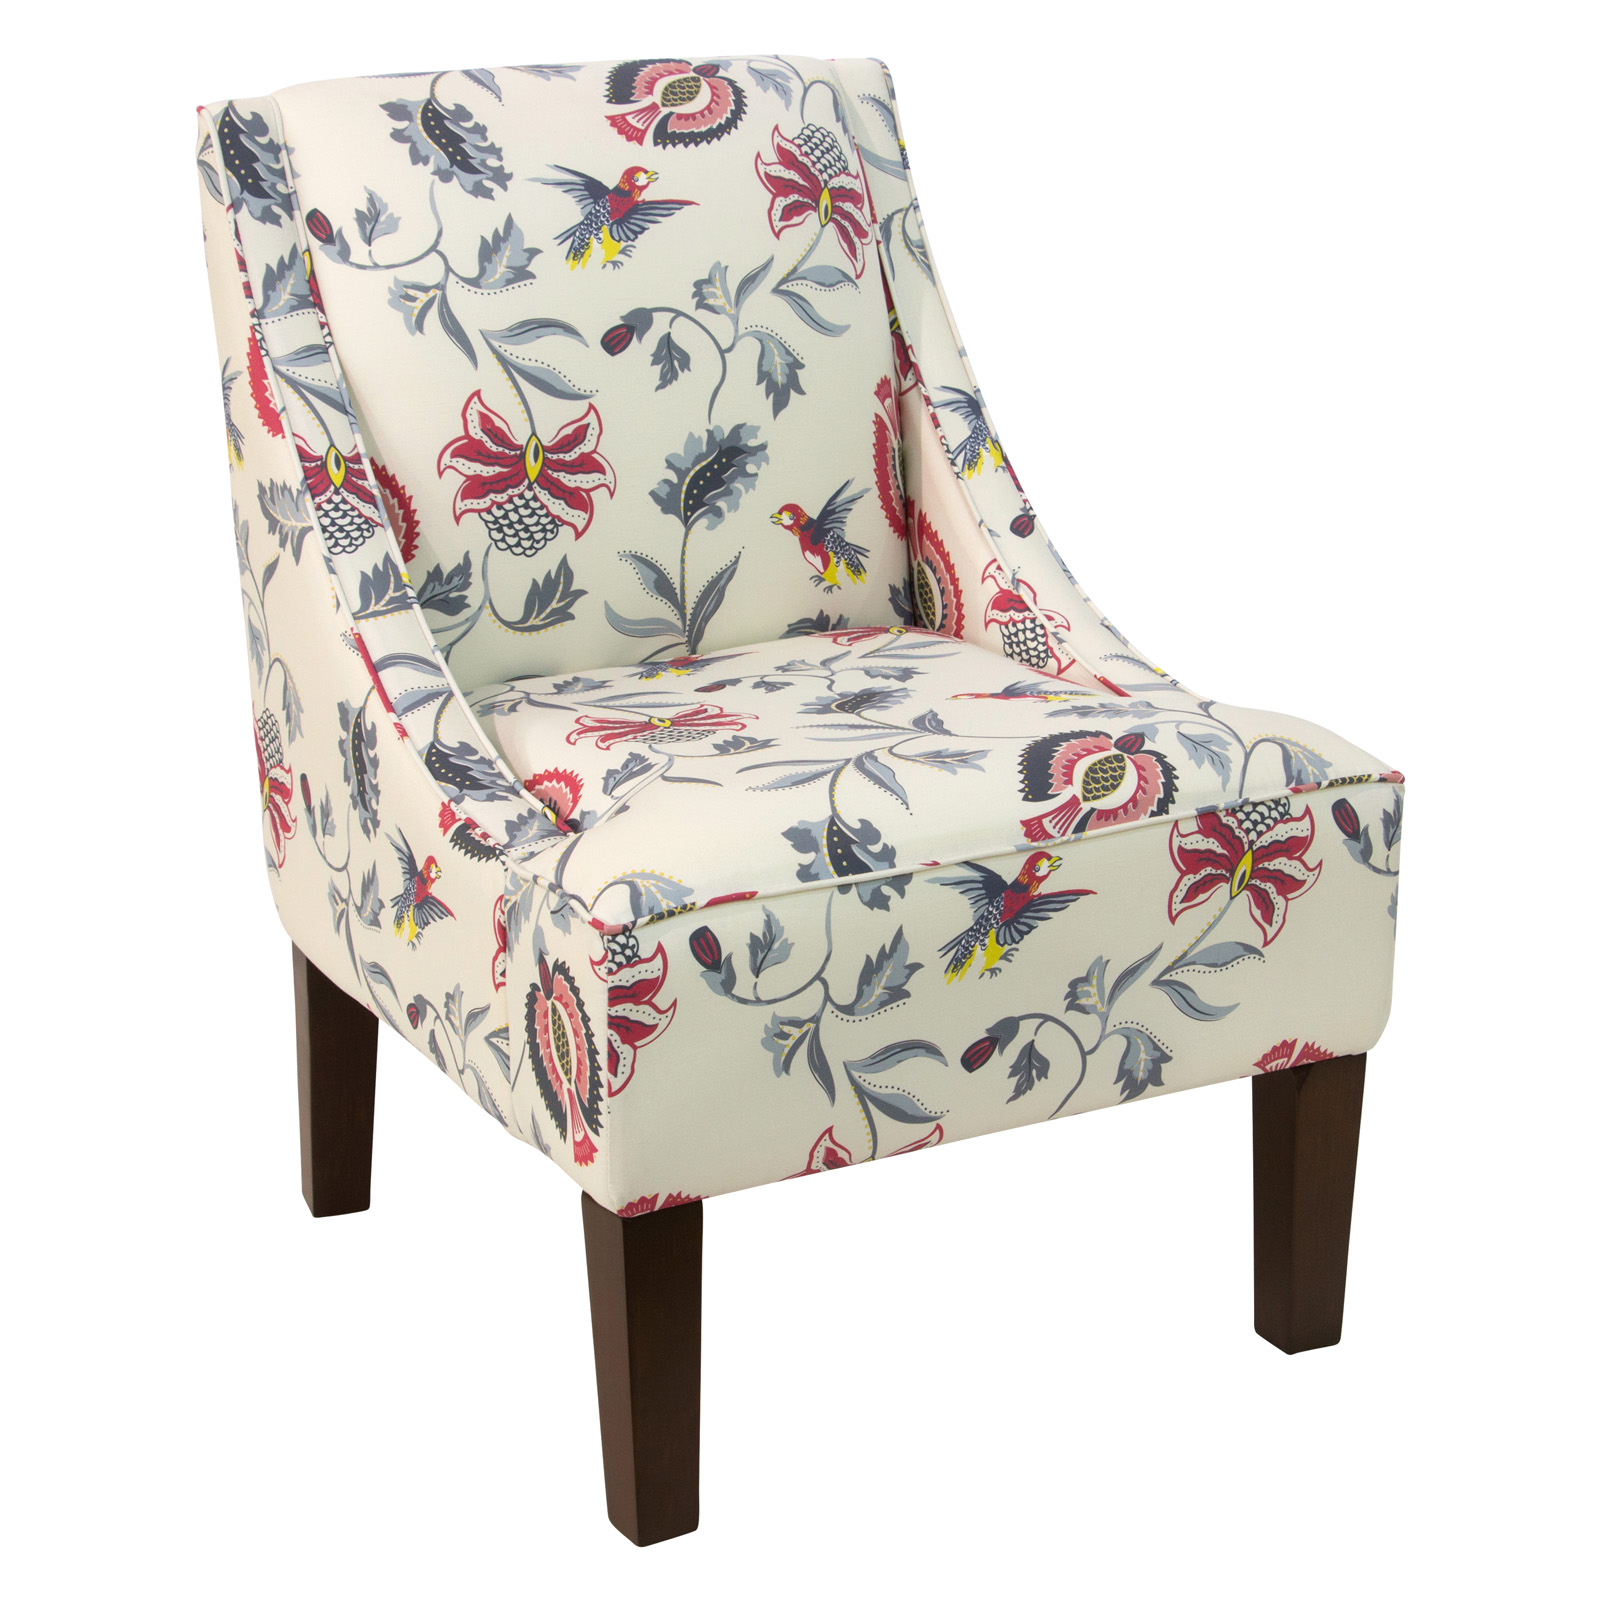 Attirant Skyline Furniture Upholstered Accent Chair